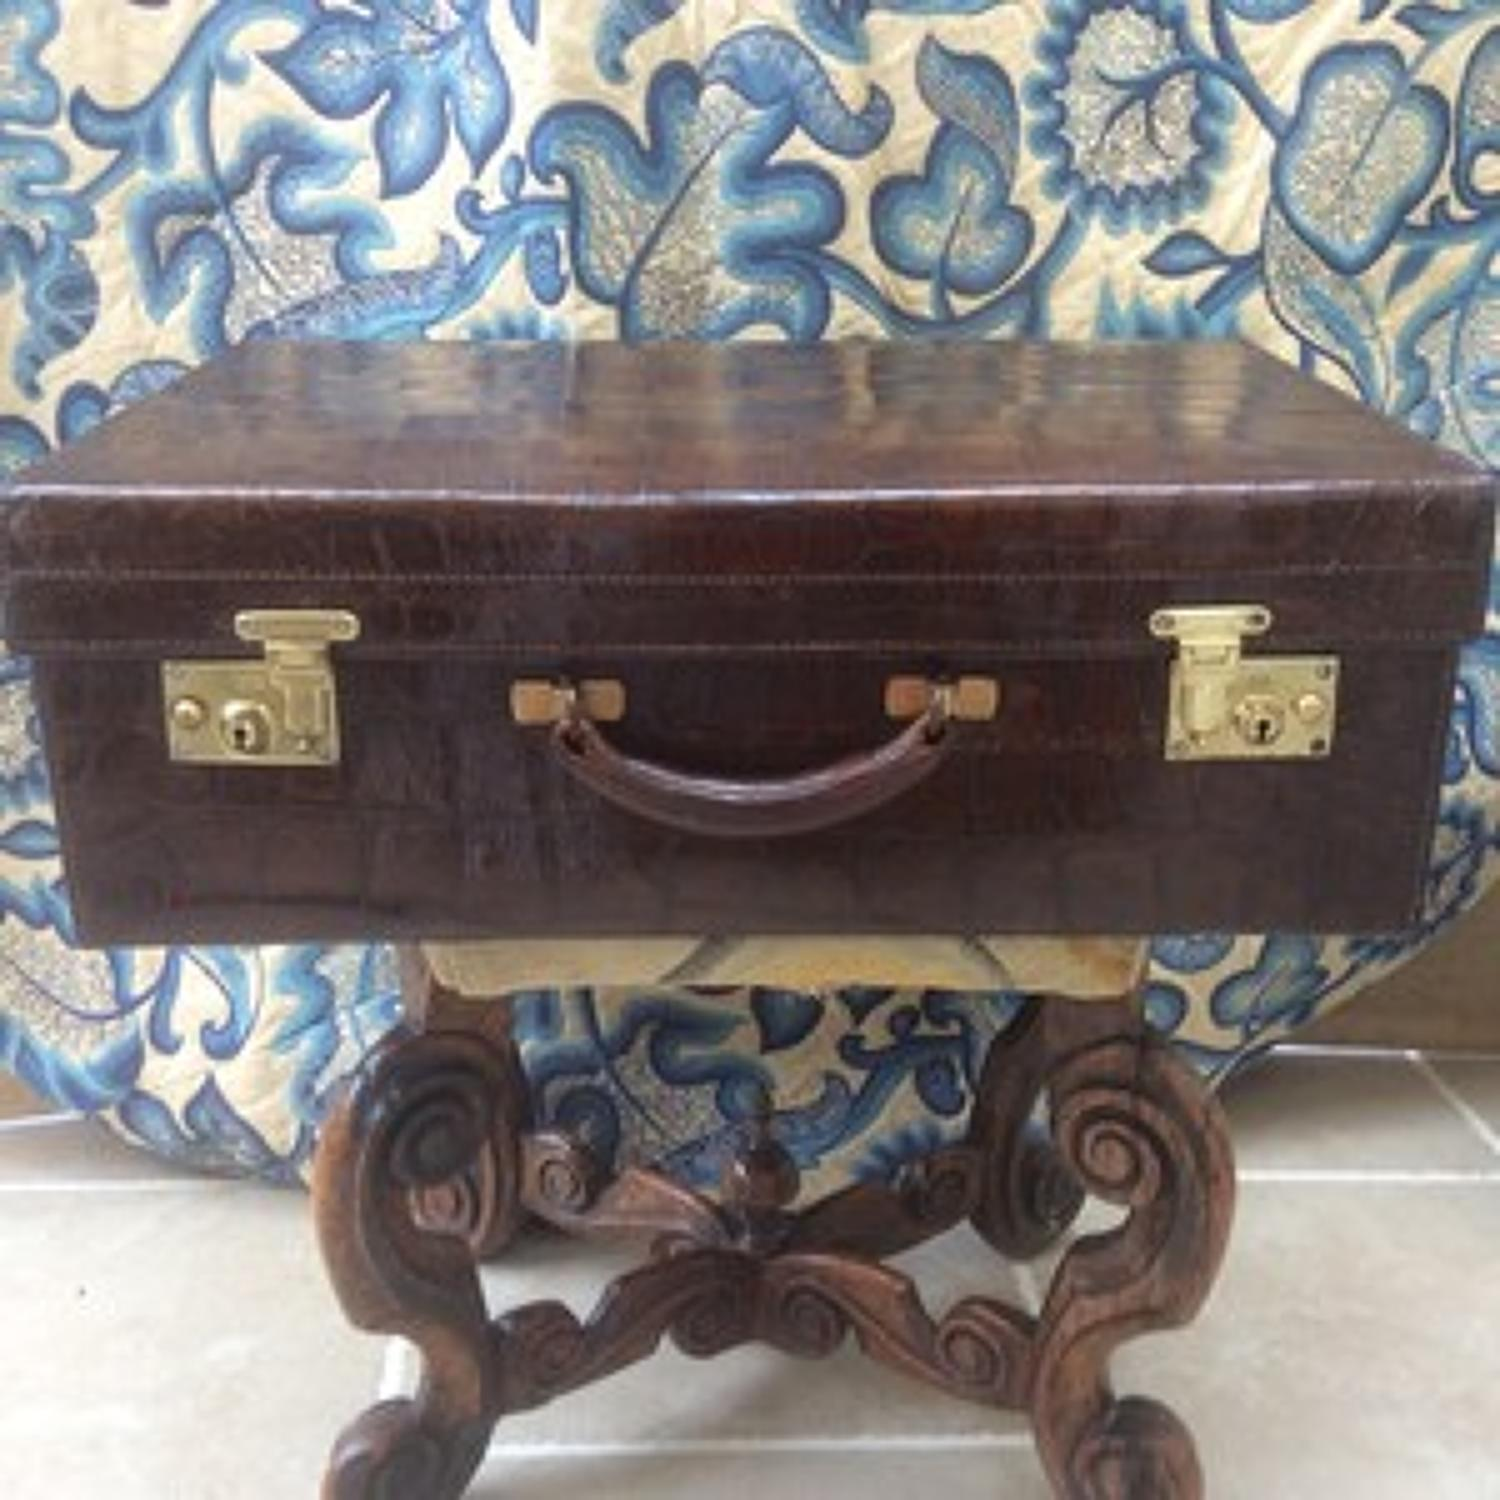 Vintage 1930s crocodile suitcase with brass locks